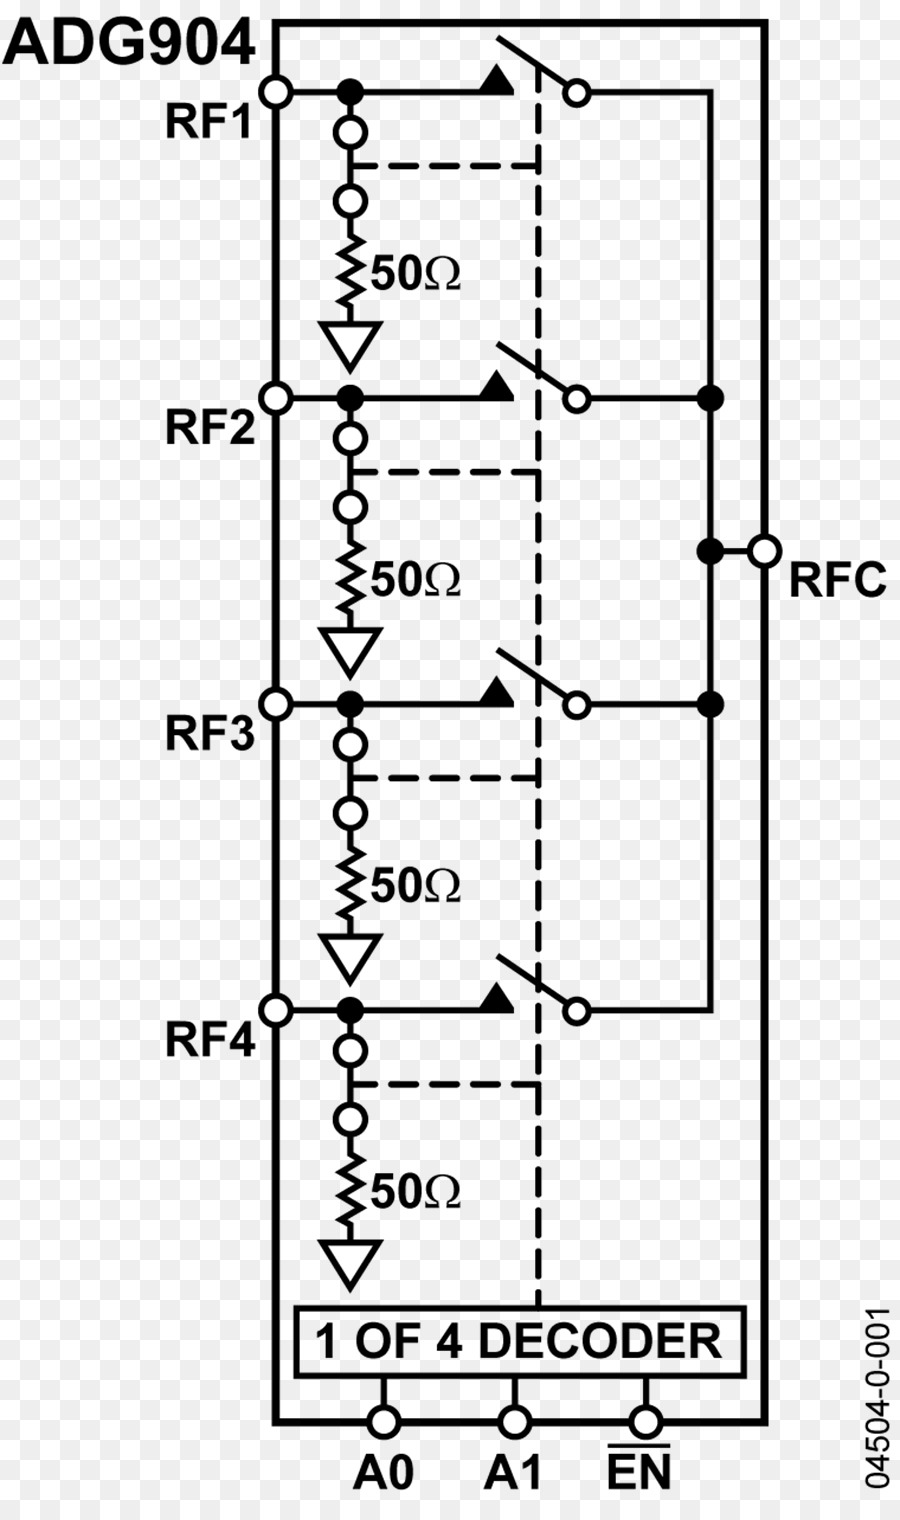 WRG-7679] Electric Block Wiring Diagram on